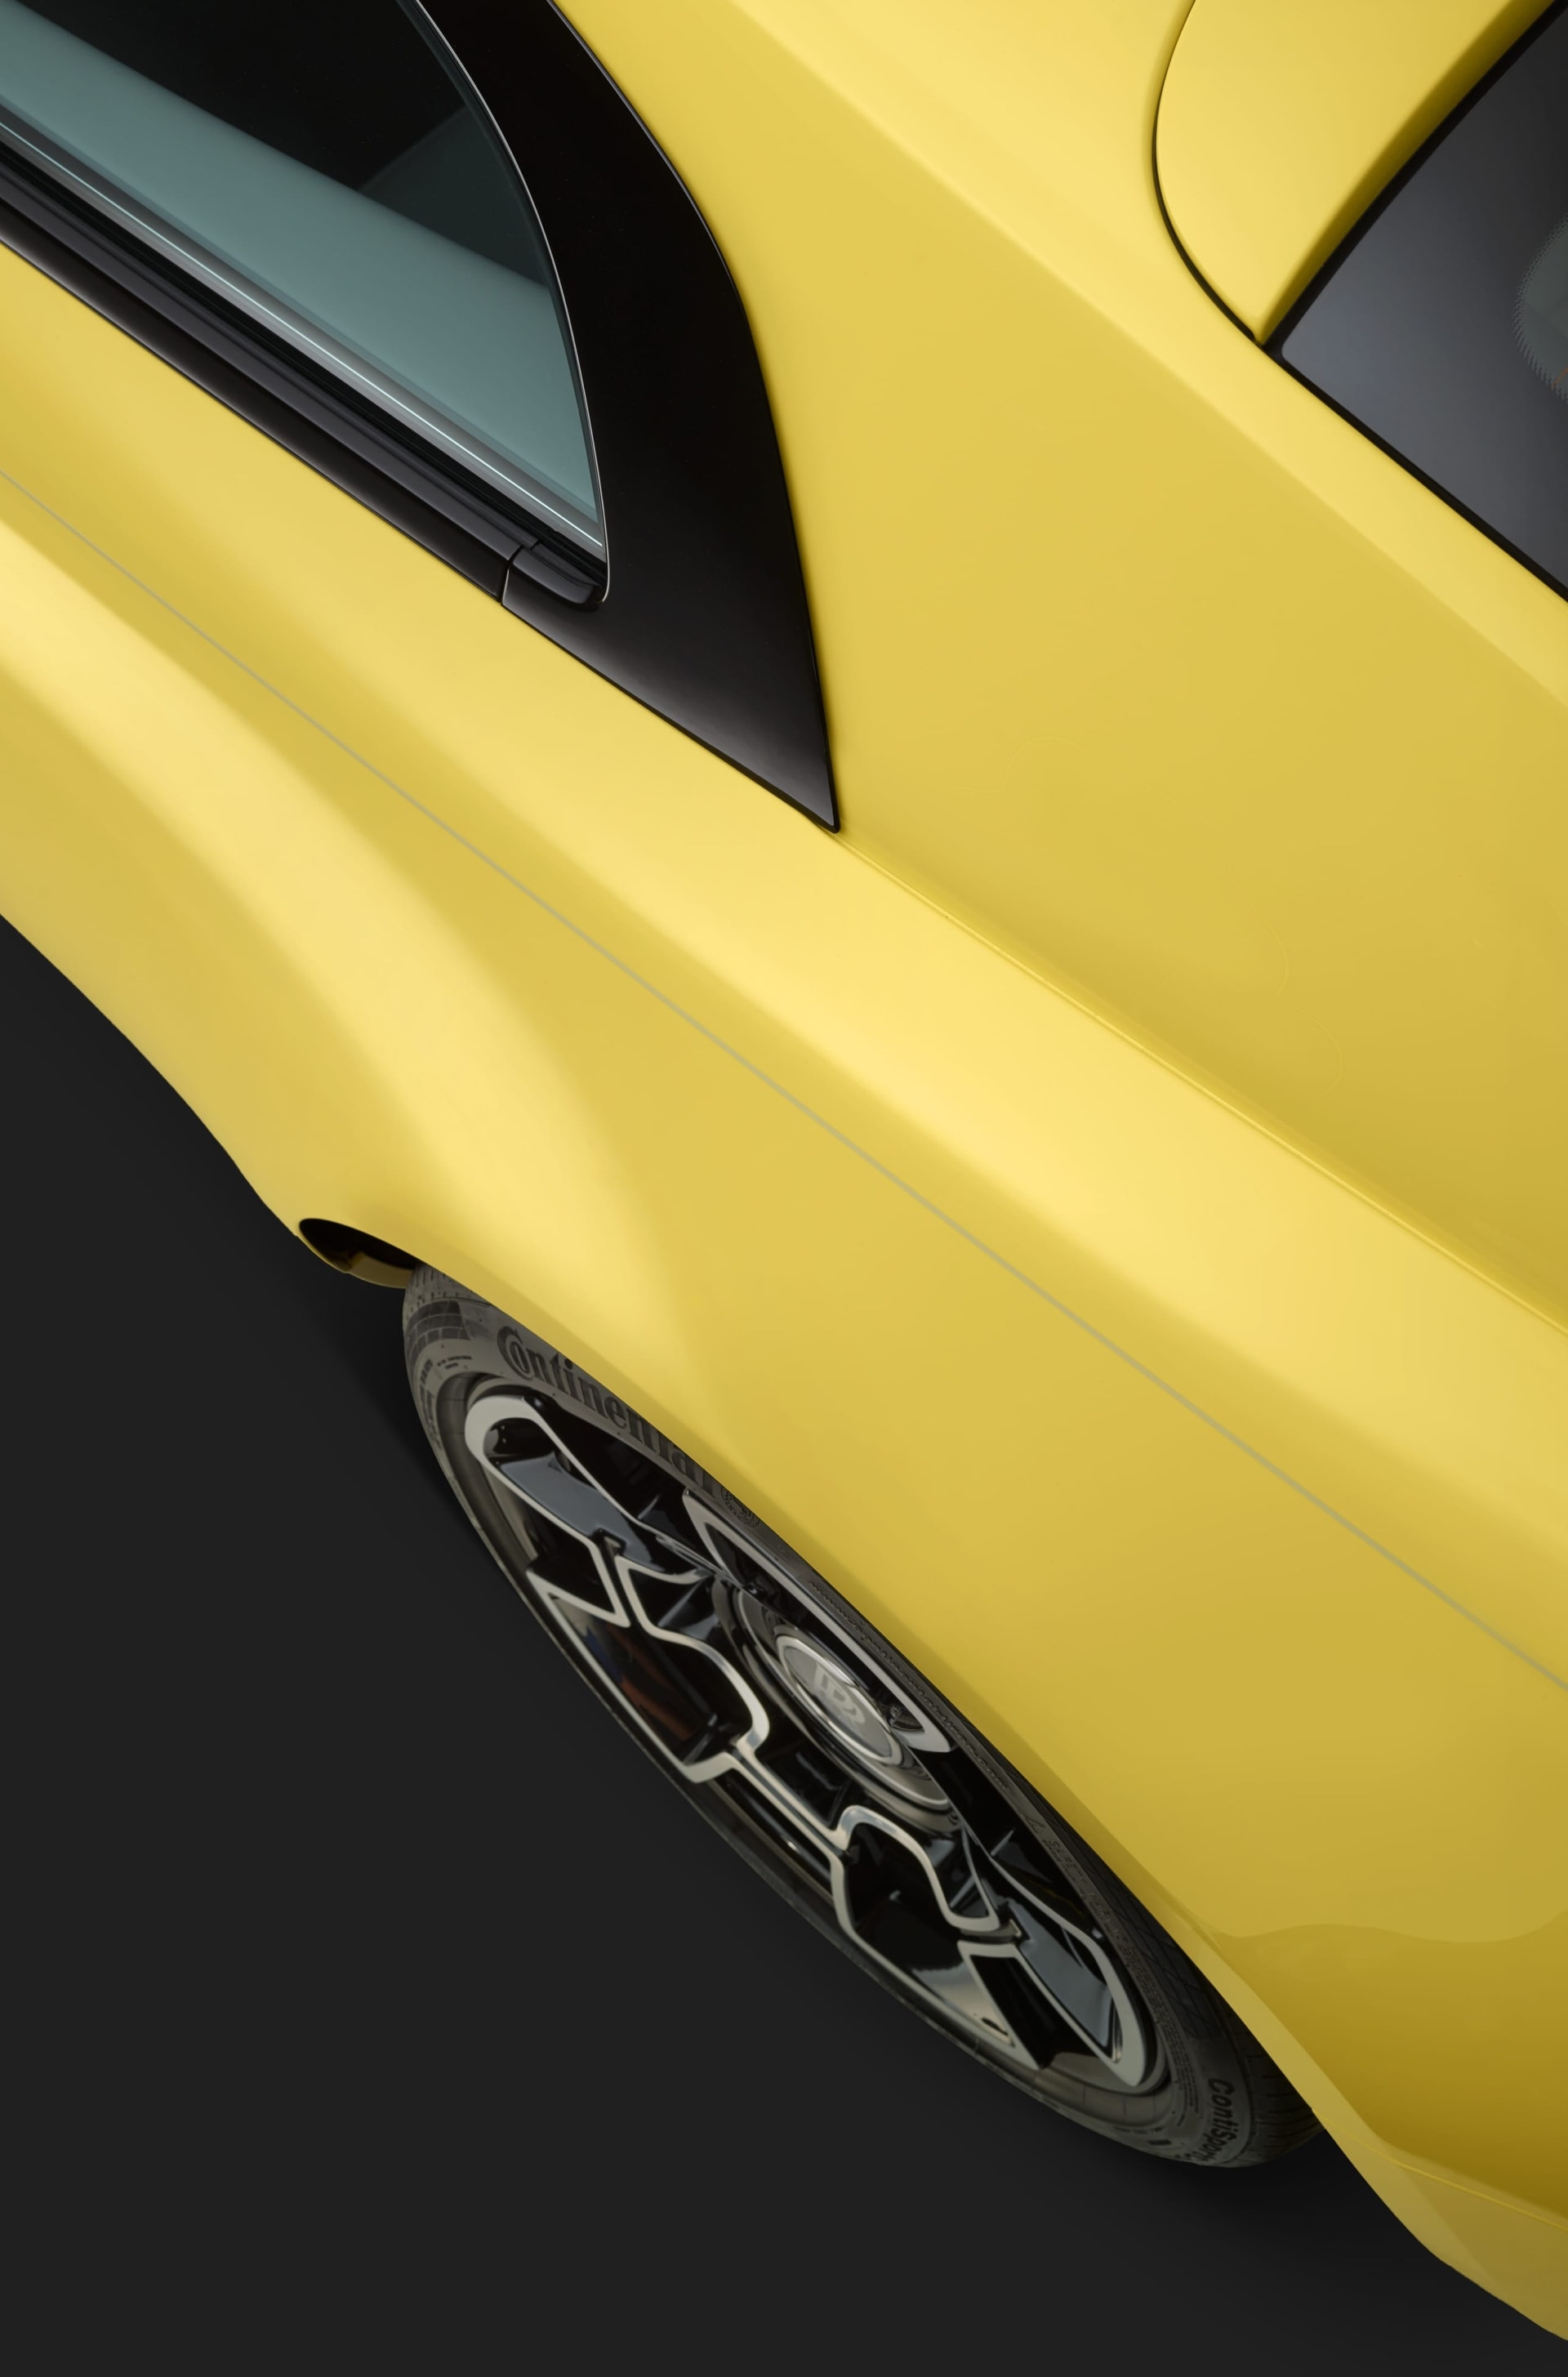 A zoomed in aerial elevated shot of the Rolls-Royce Semaphore Yellow Black Badge Wraith revealed at Pebble Beach.